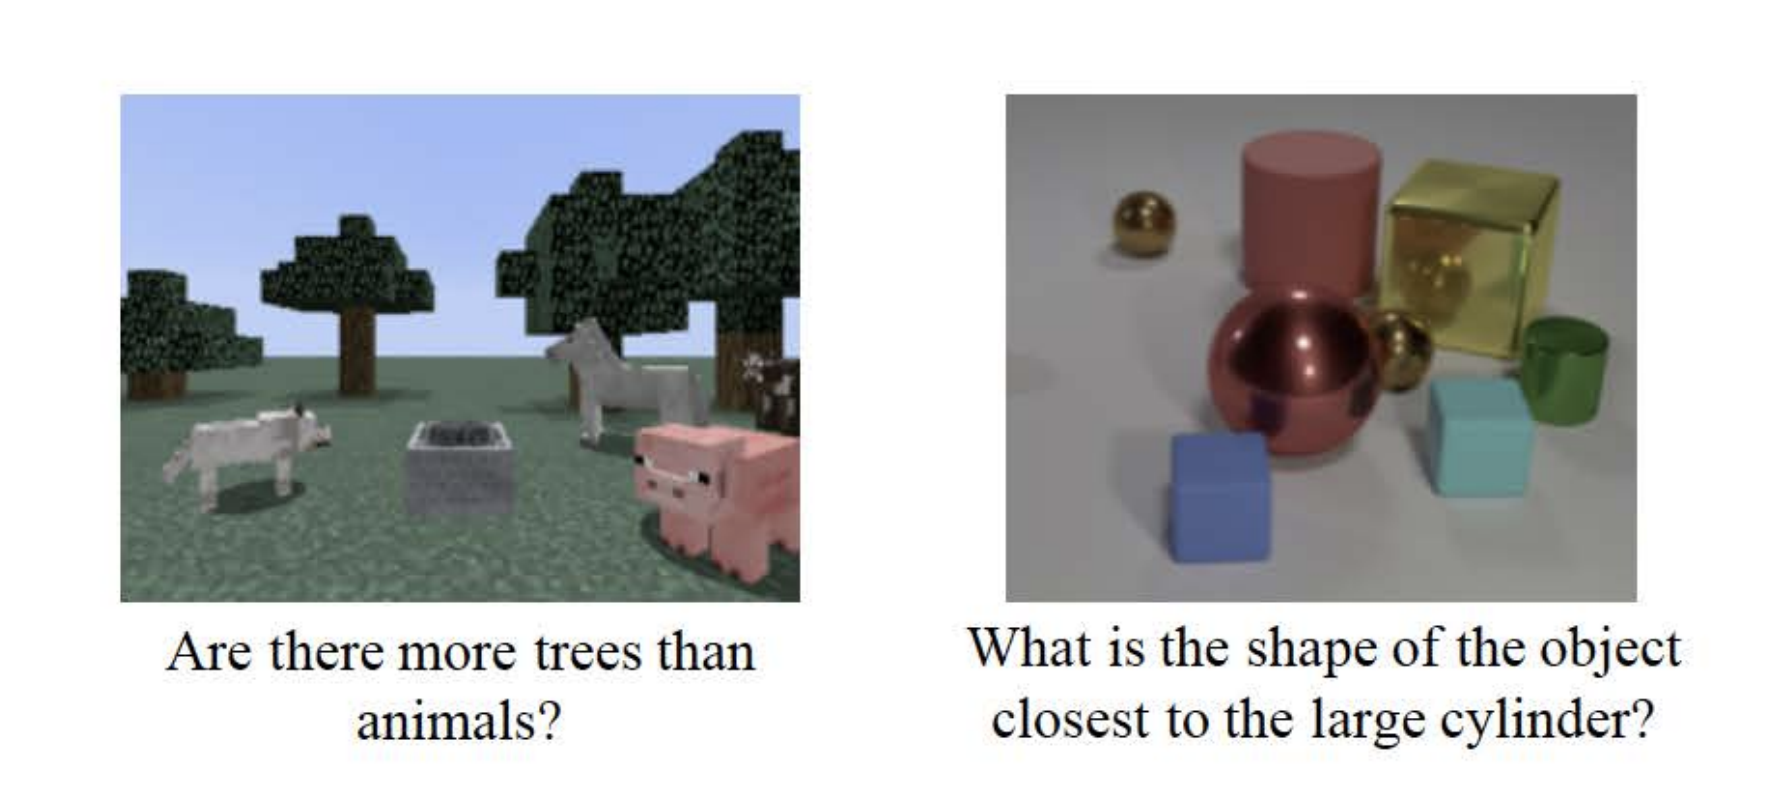 """An image composed of two images. The left image is a screenshot from a popular game titled Minecraft where there are several trees and animals as well as a metal cart. Under the image there is text that says """"Are there more trees than animals?"""".  The right image consists of eight solid objects on a white surface. The objects are varied in terms of size, shape, and material. Text under the image asks """"What is the shape of the object closest to the large cylinder?""""."""